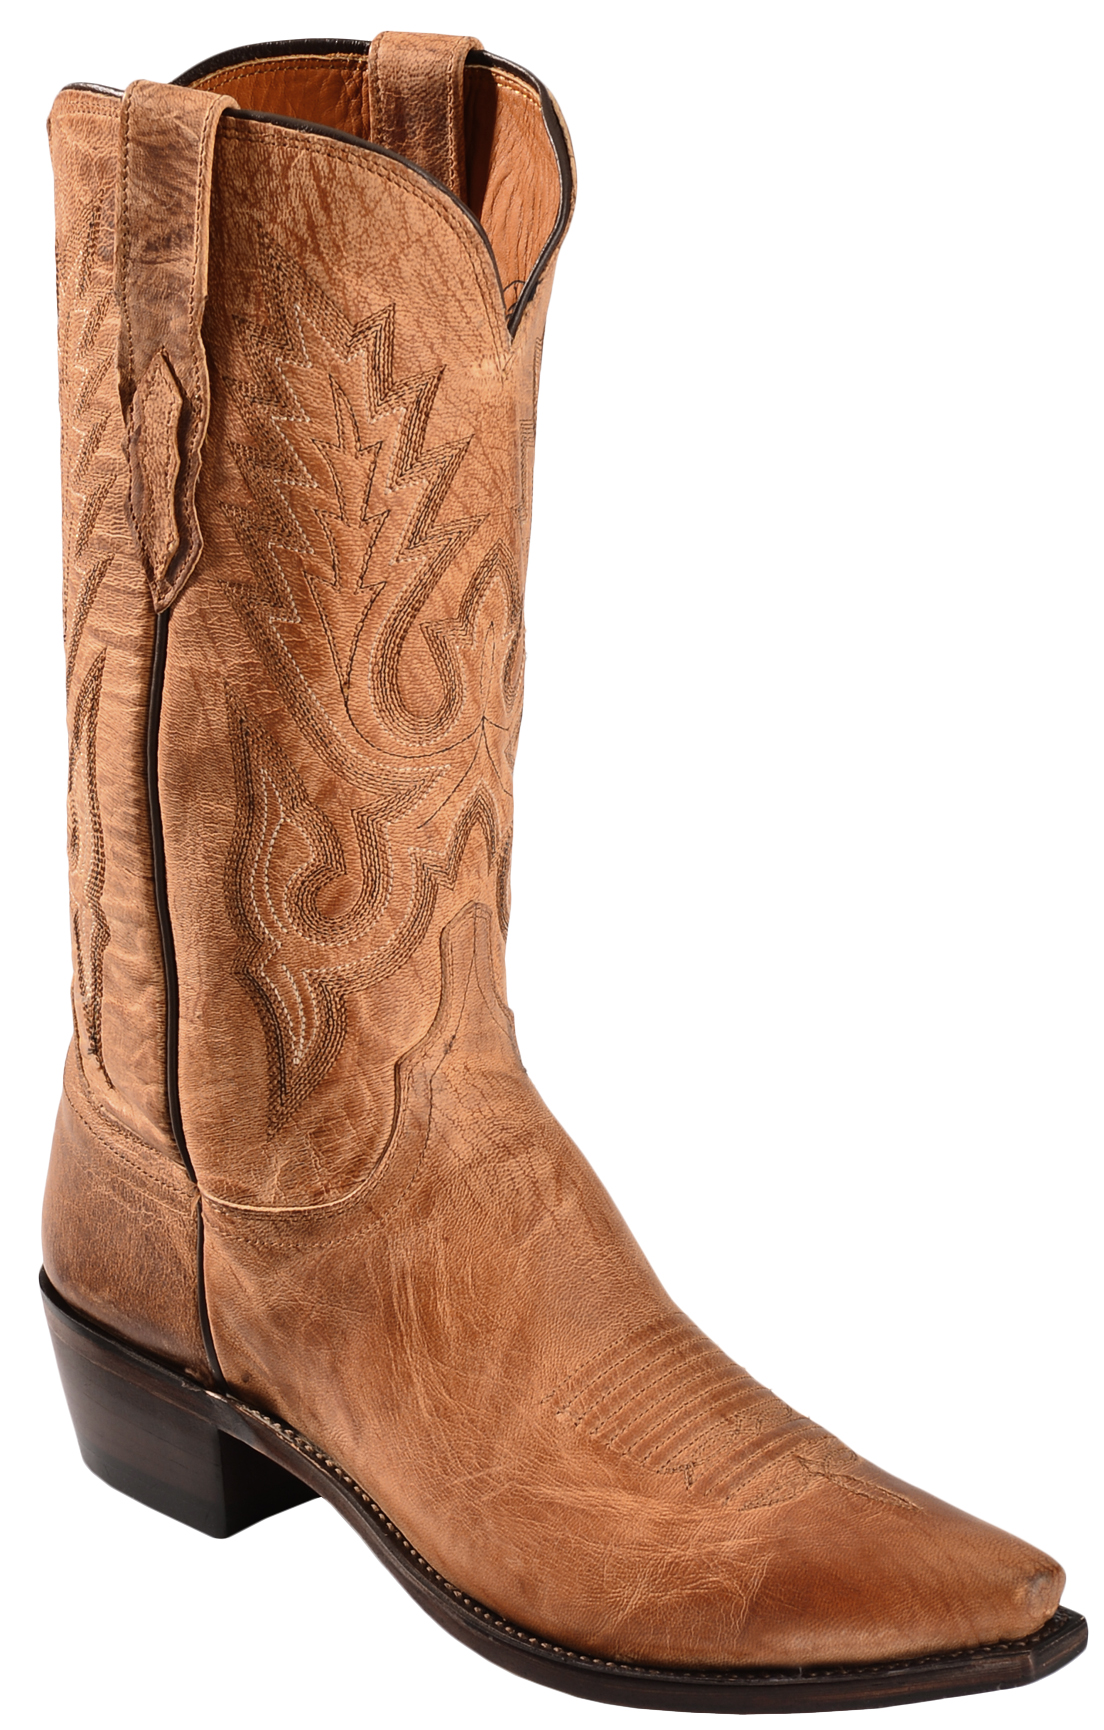 Lucchese Handcrafted 1883 Tan Mad Dog Goatskin Cowboy ...